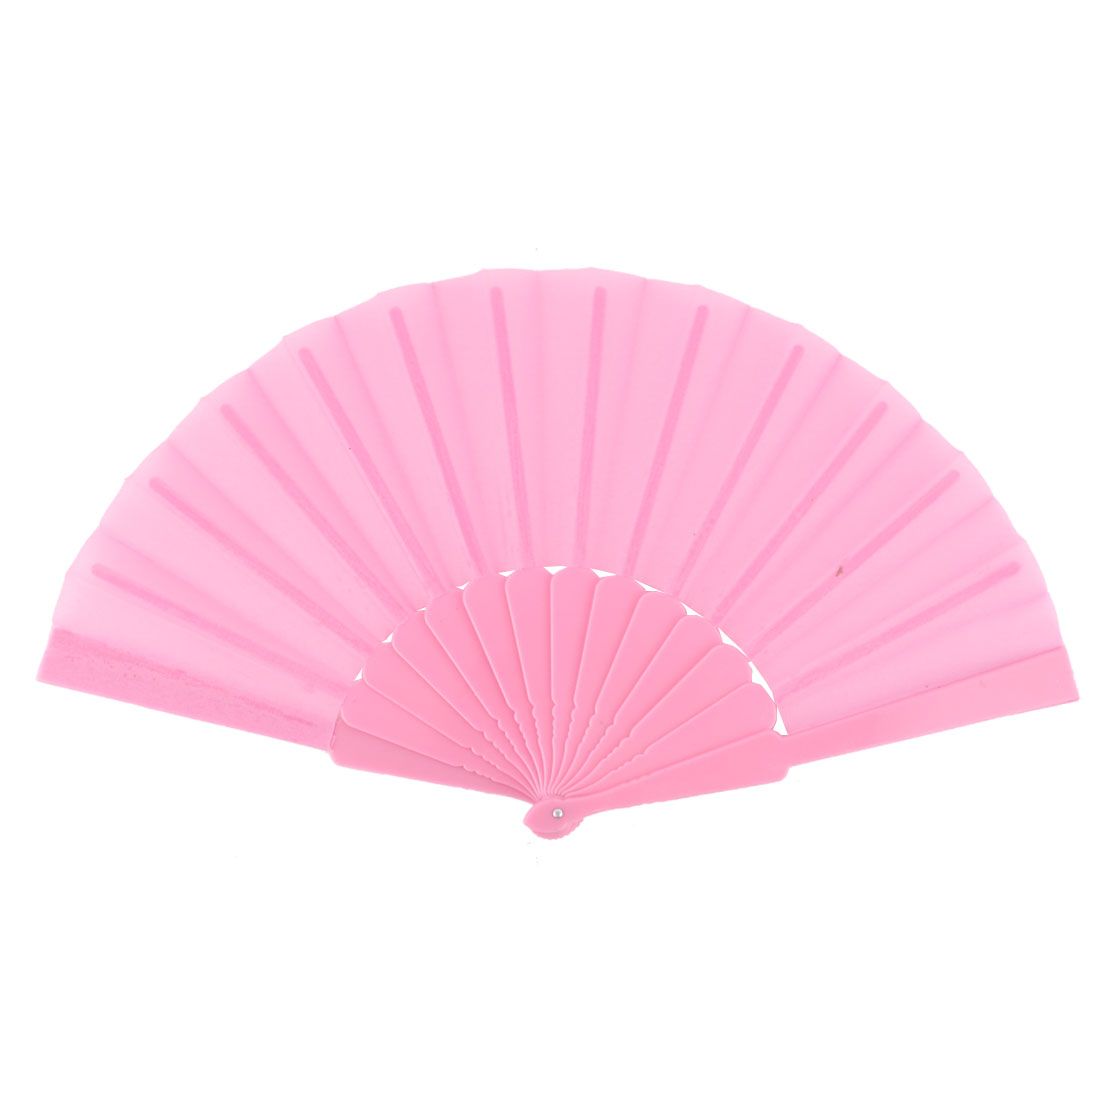 Lady Household Outdoor Party Gift Plastic Rib Chinese Style Foldable Hand Fan Pink